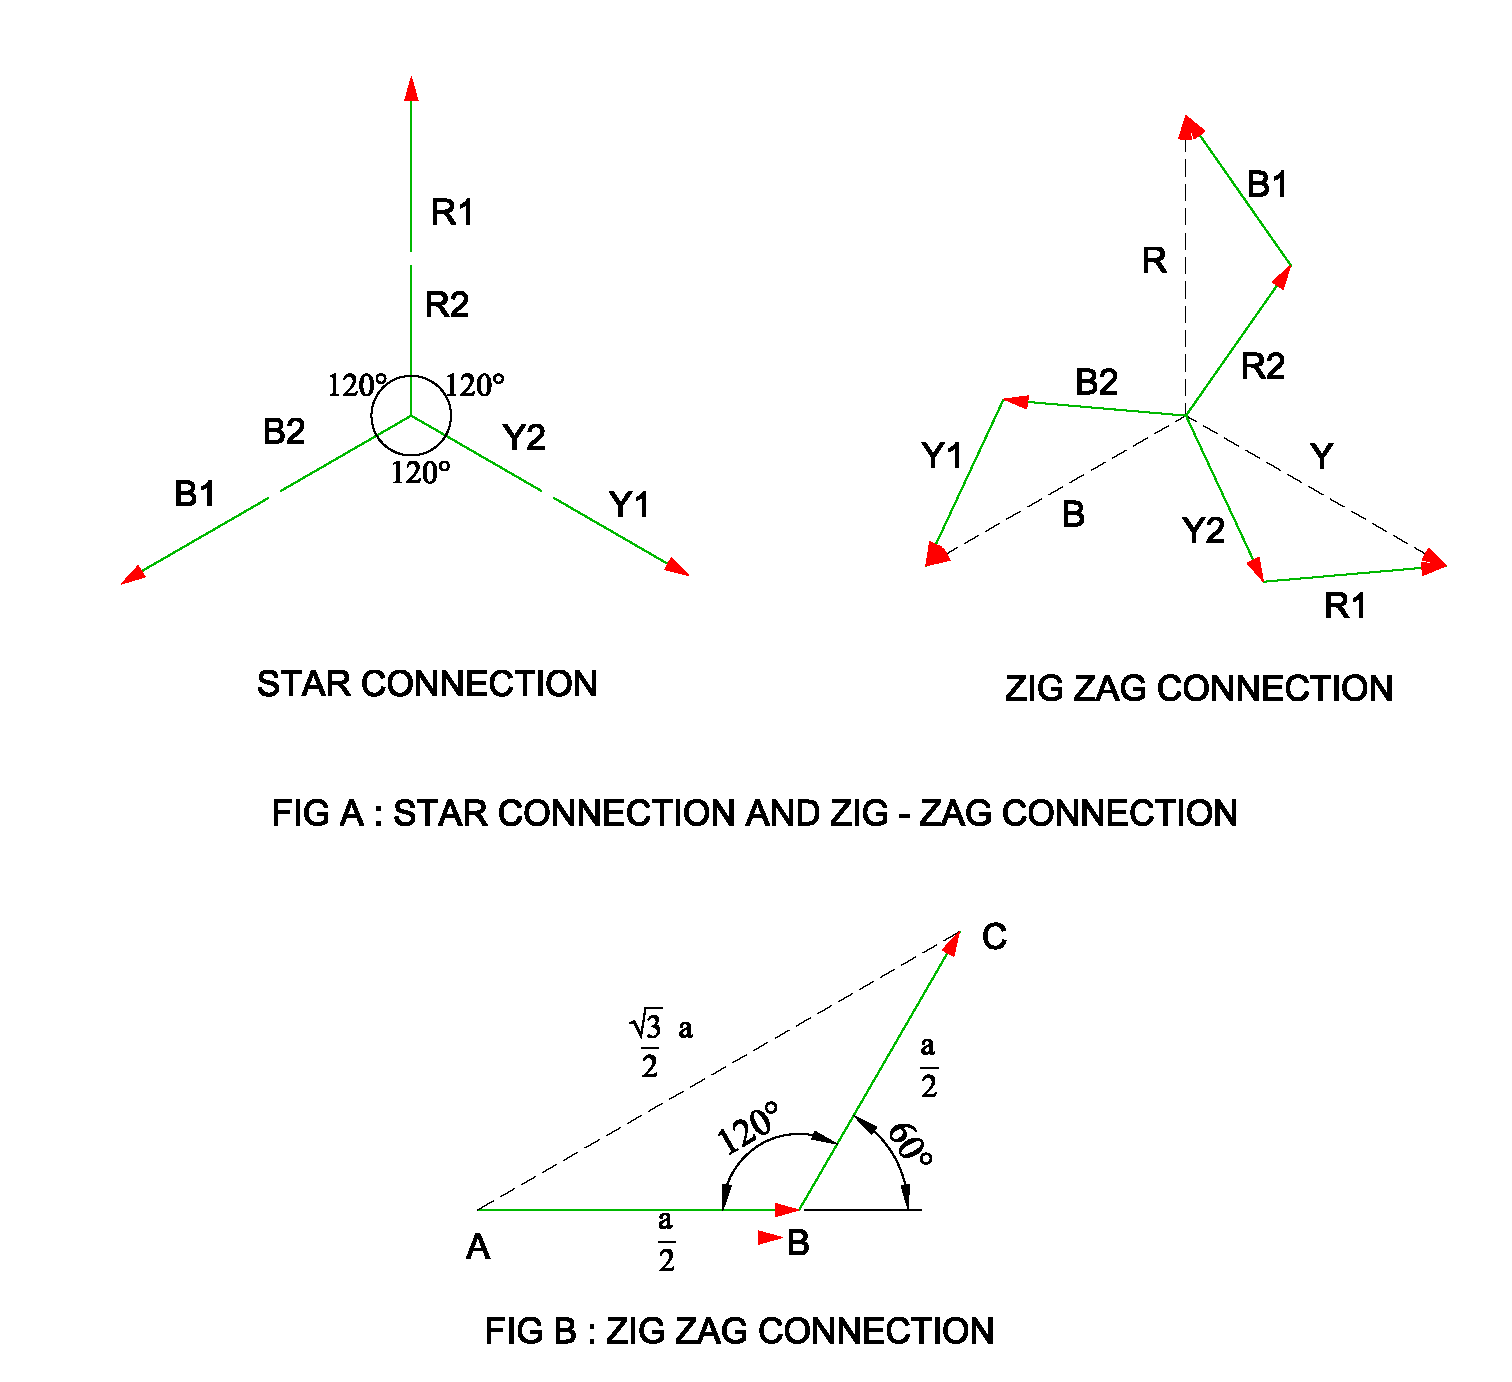 Fig A. shows star connection in which each phase consists of two windings.  In order to convert this winding into zig – zag connection.